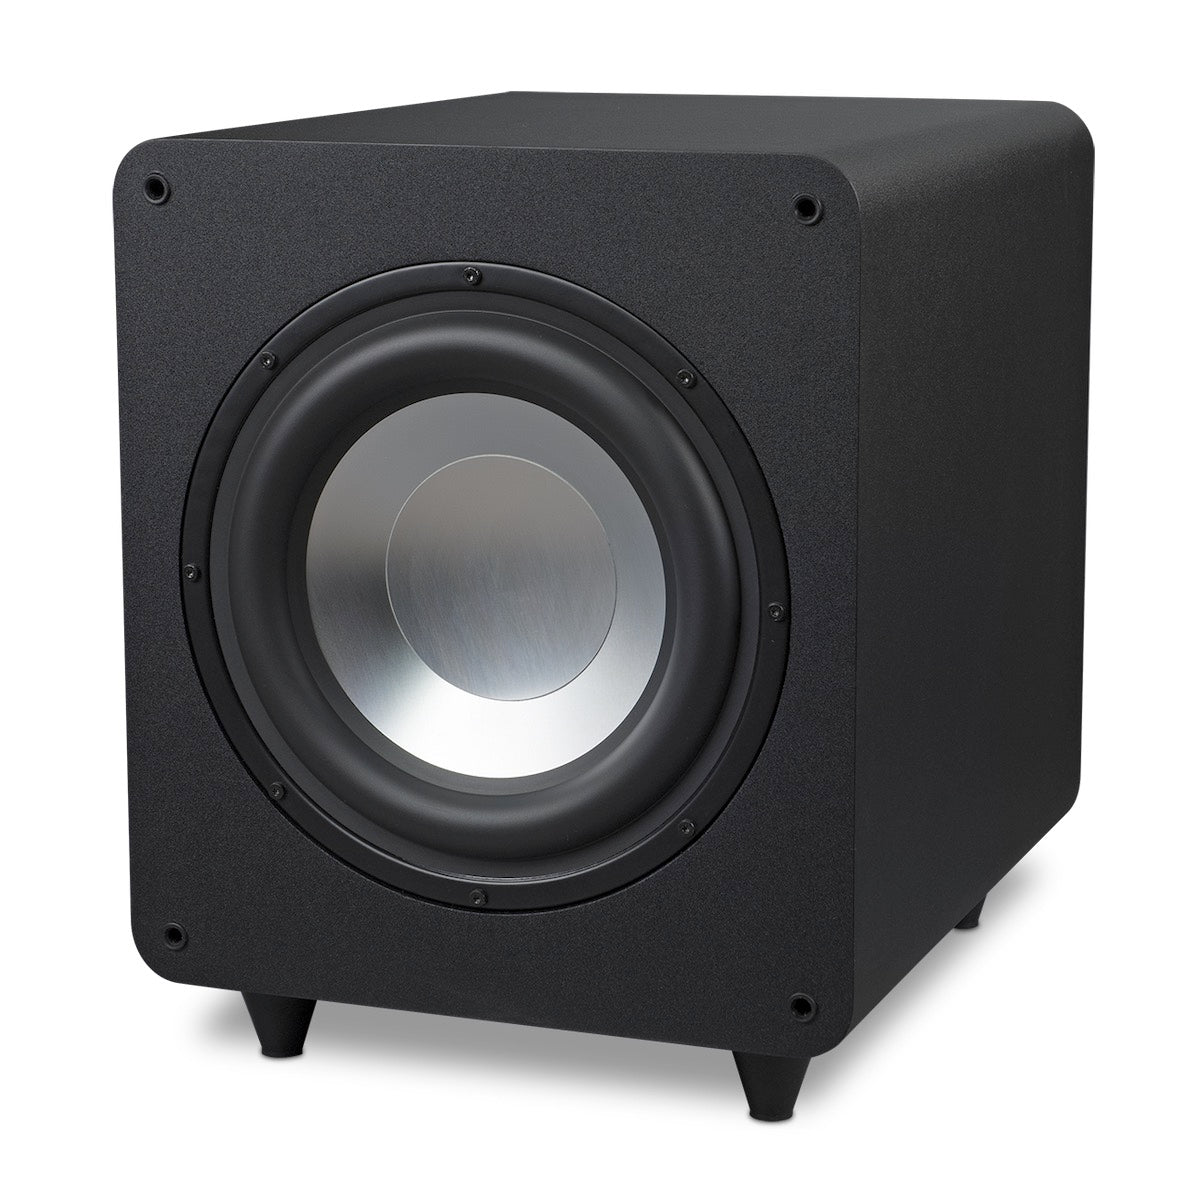 RBH Sound S-10 - Active Subwoofer, RBH Sound, Subwoofer - AVStore.in